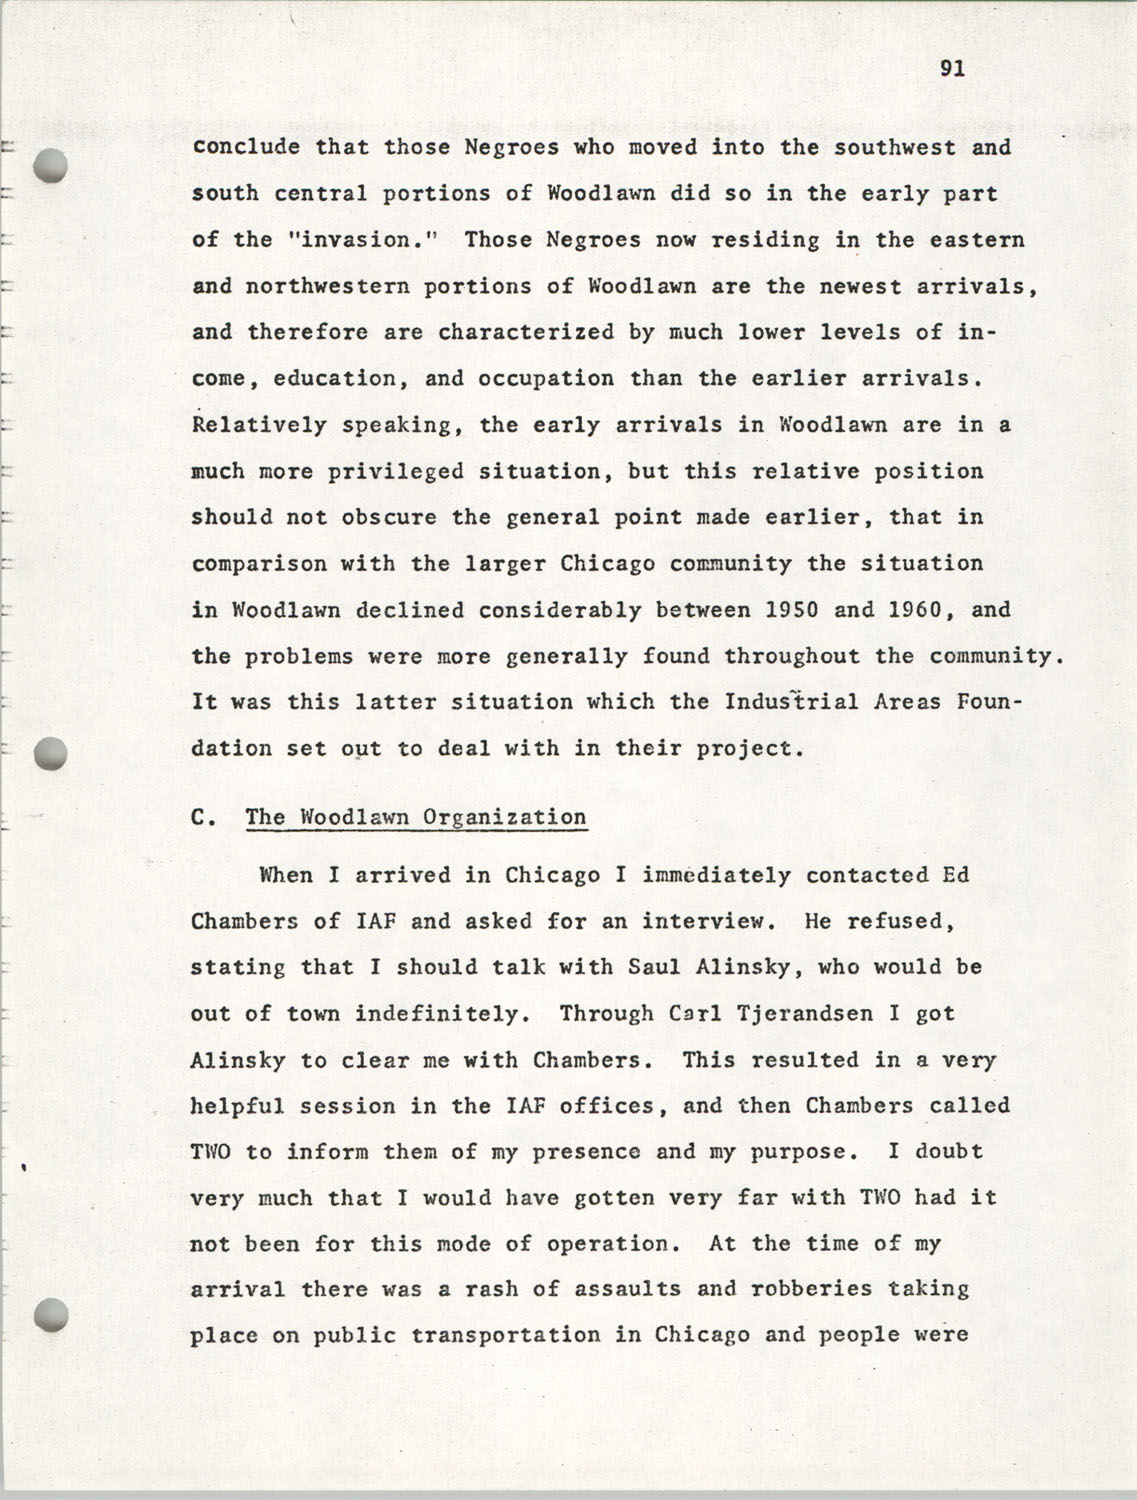 Citizen Participation. Democracy and Social Change, December 1, 1969, Page 91